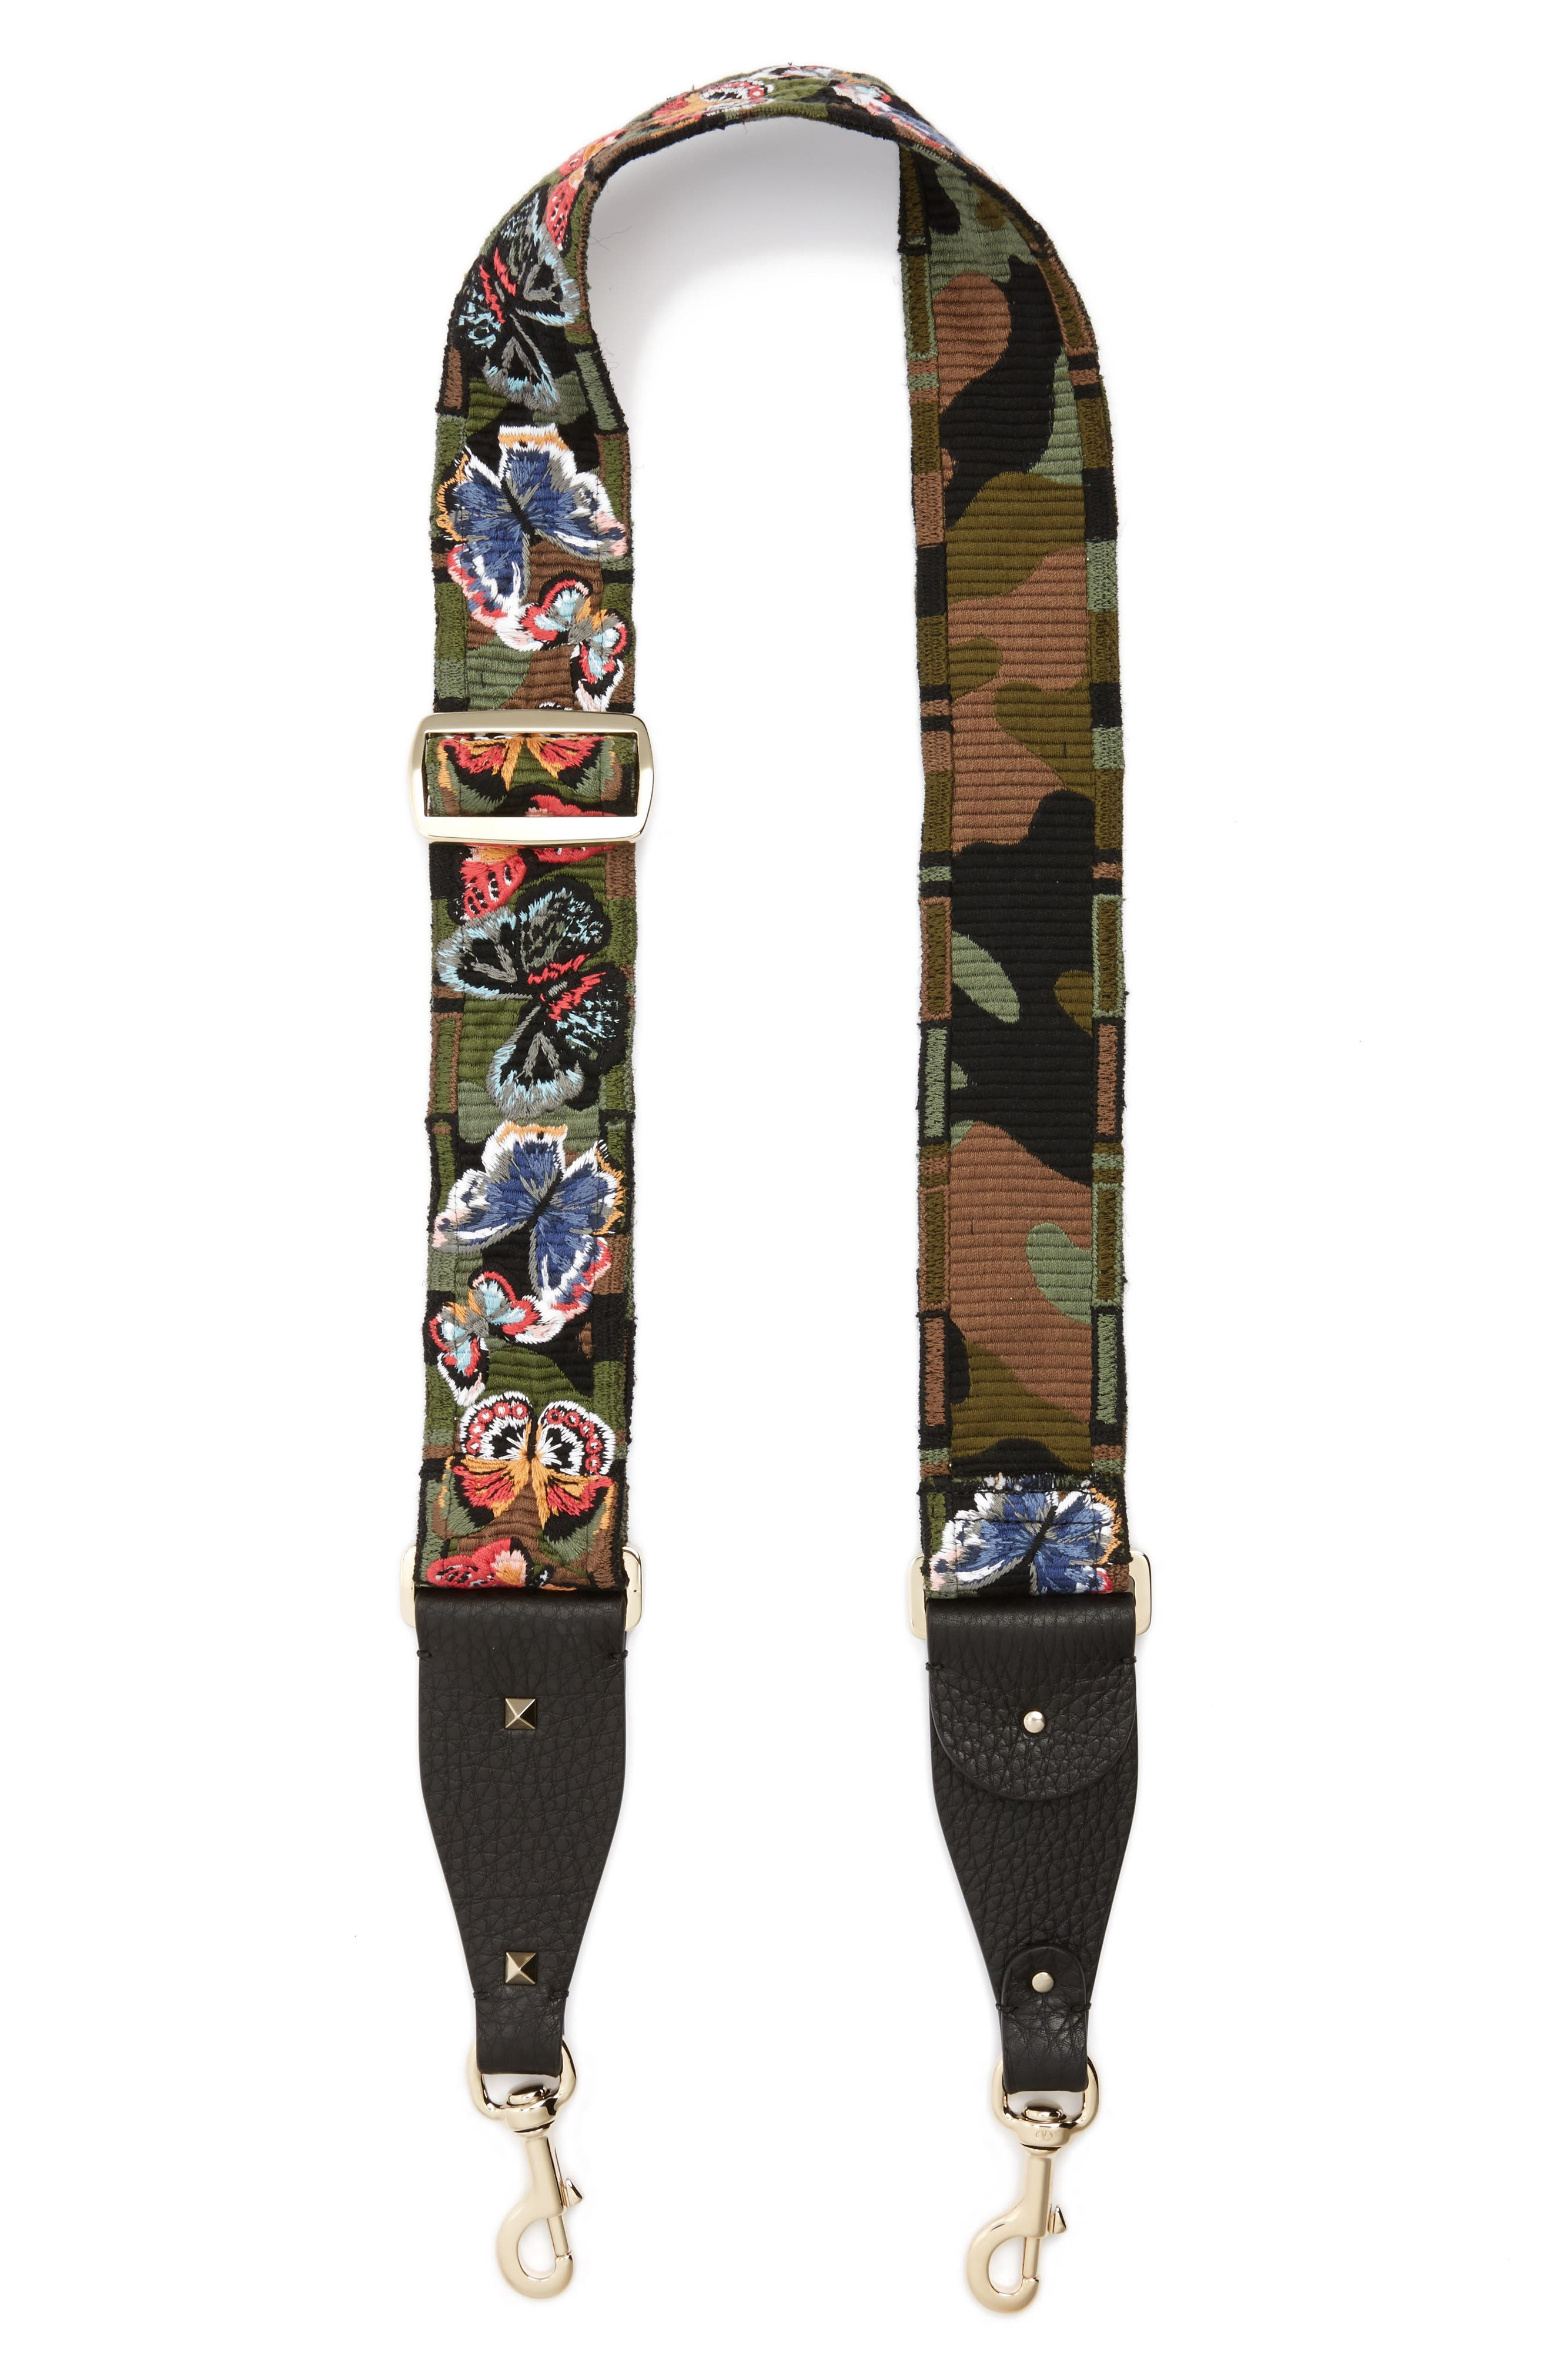 Embroidered Butterfly Rockstud Leather Guitar Strap,                             Main thumbnail 1, color,                             398